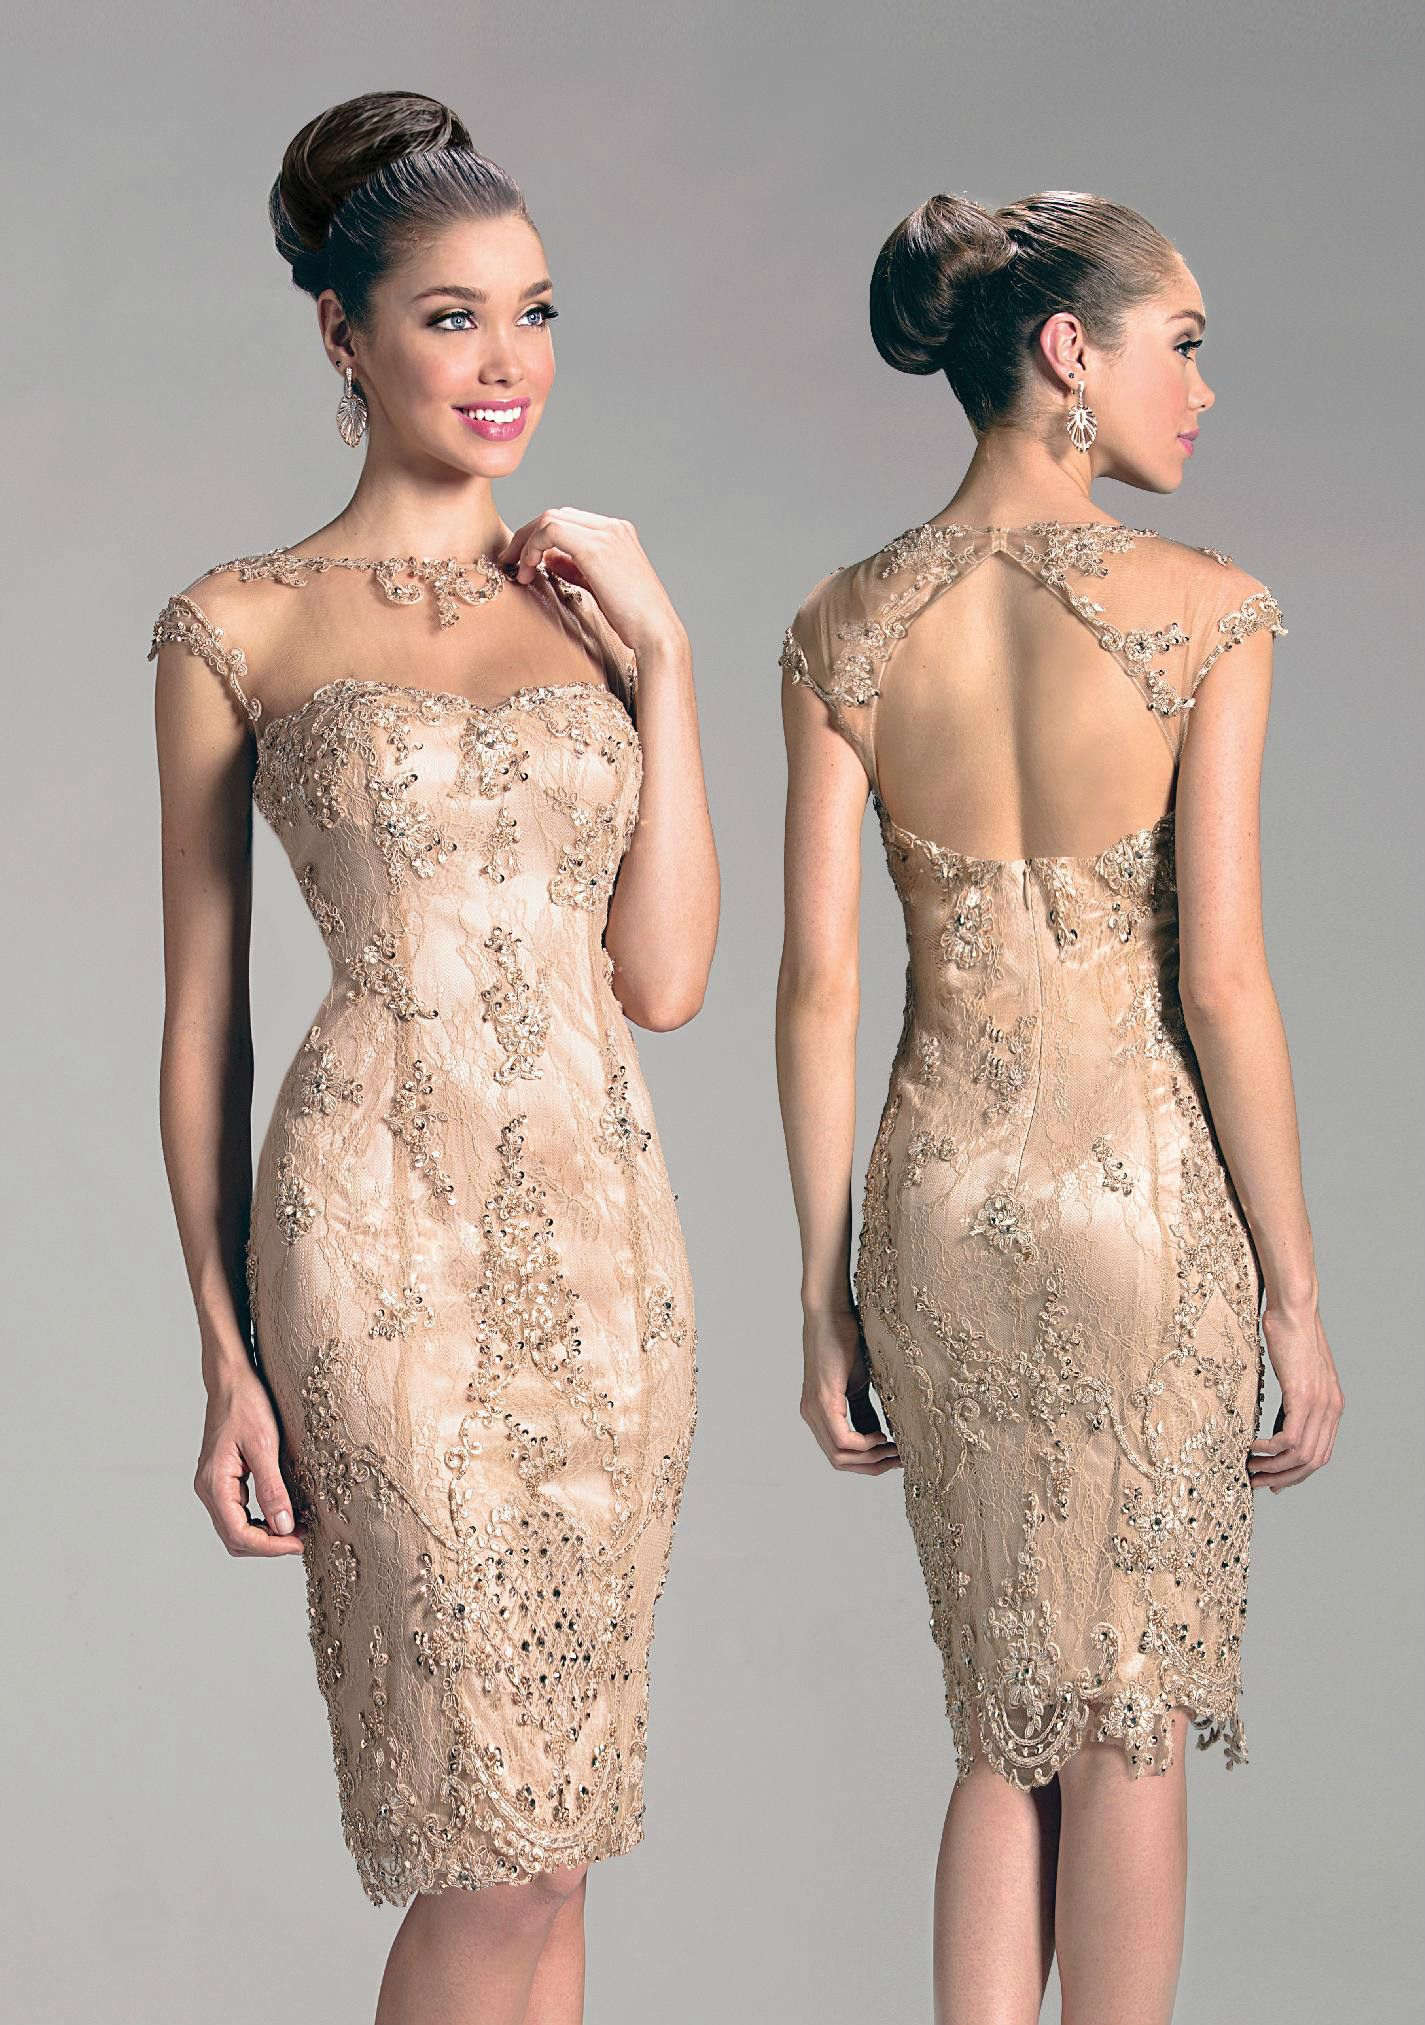 Gorgeous Knee Length Cocktail Dress In Champagne Sheer Collar With Delicate Embroidery And Cocktail Dress Patterns Knee Length Cocktail Dress Elegant Dresses [ 2025 x 1425 Pixel ]